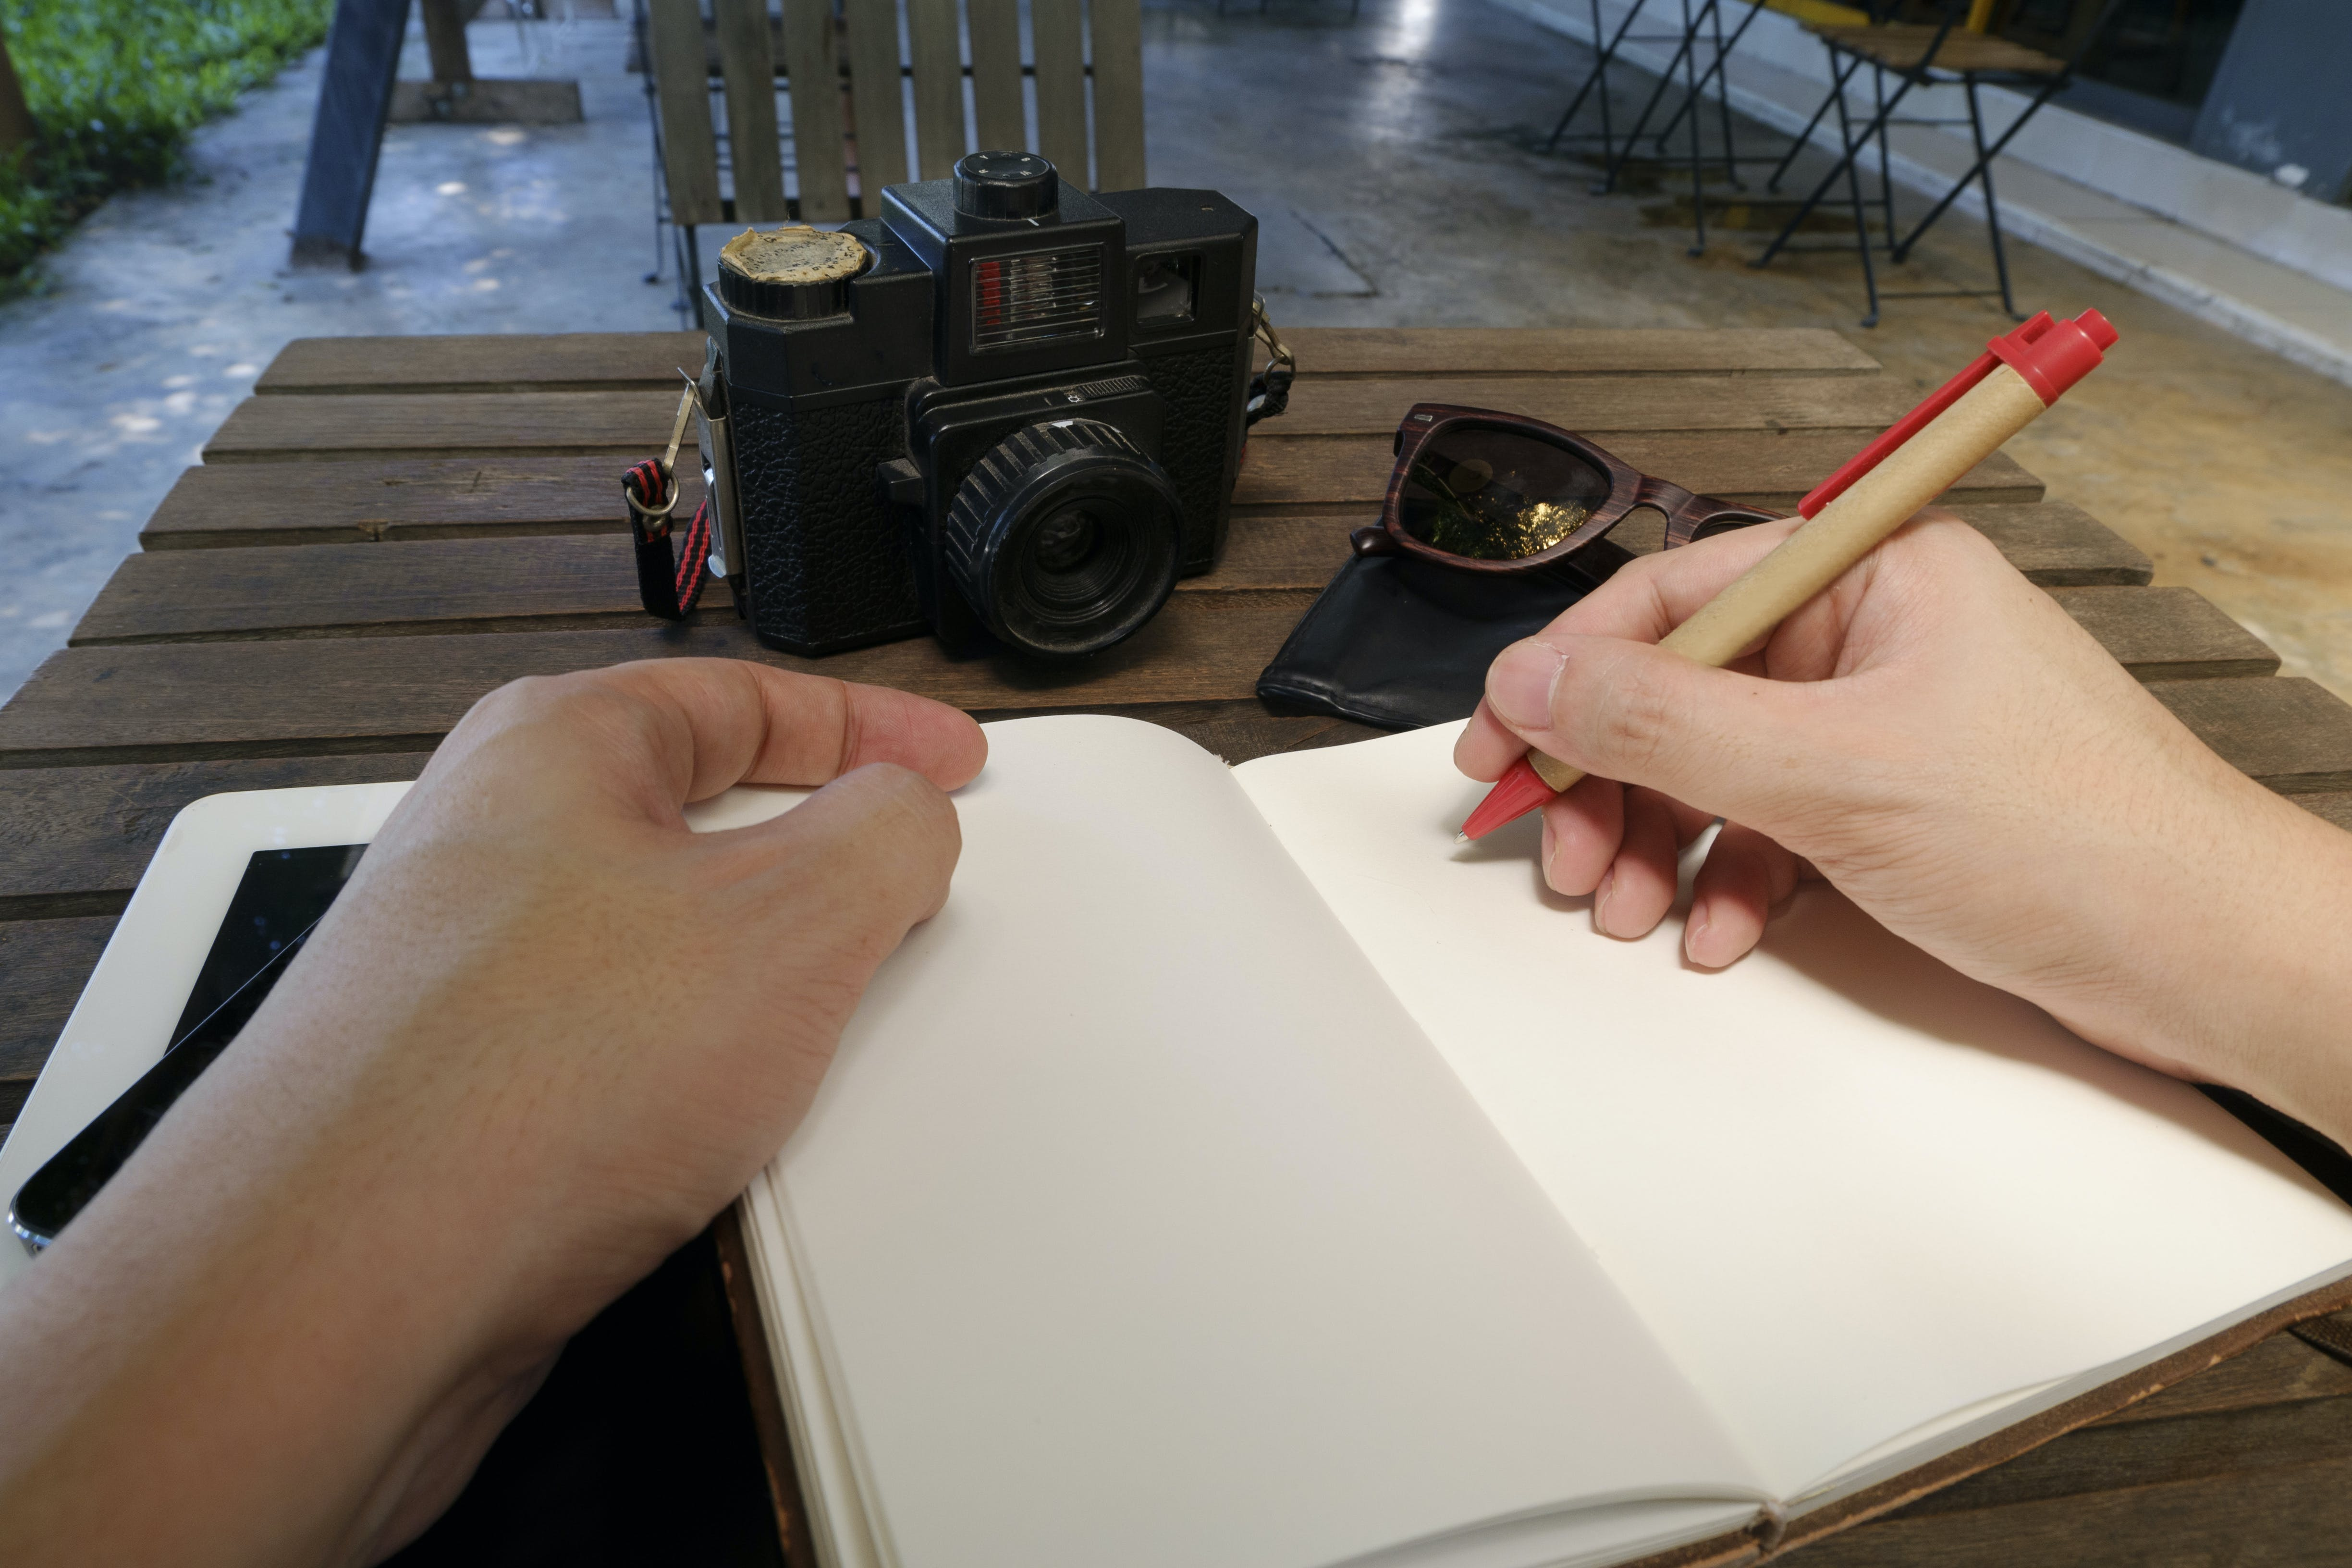 Person Writing Beside Dslr Camera on Brown Wooden Table